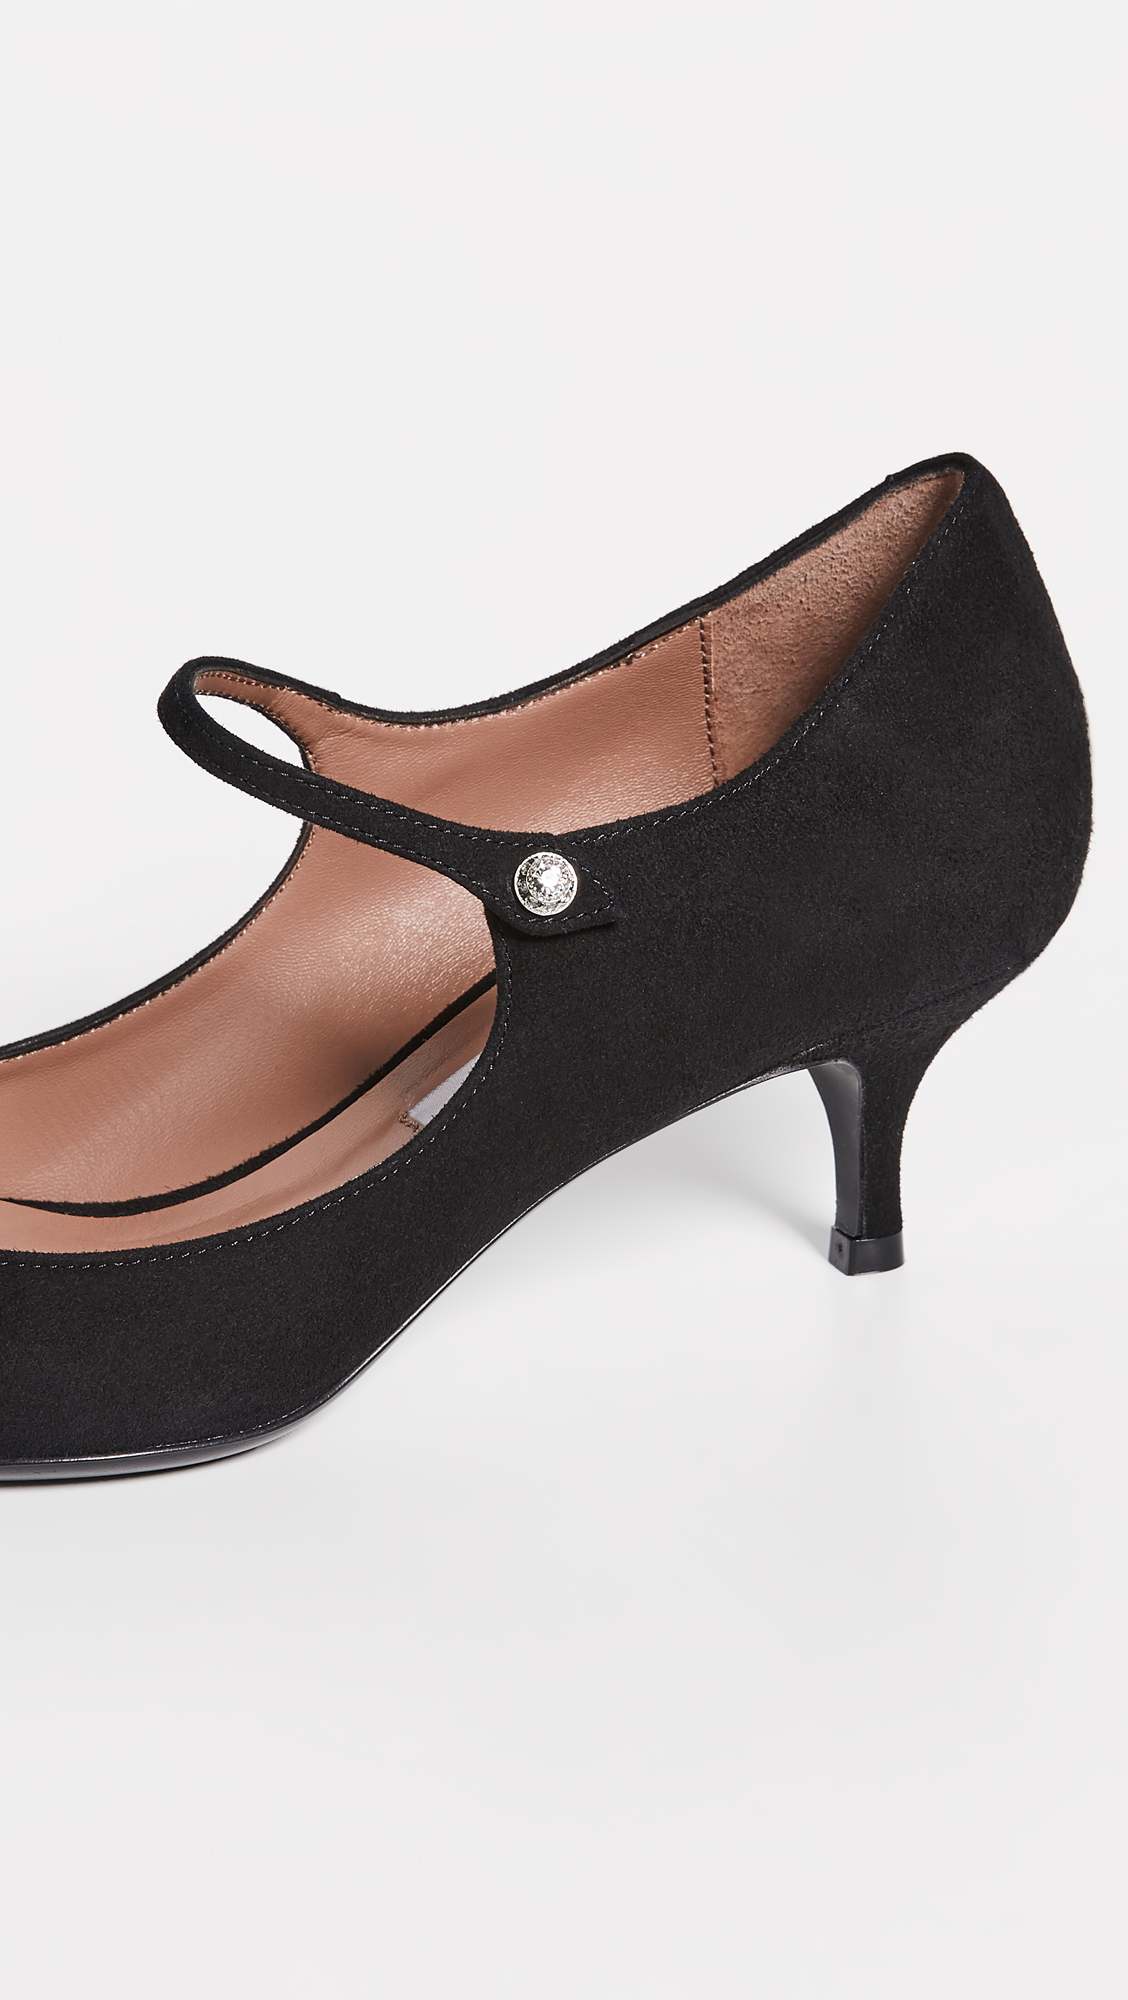 Tabitha Simmons Hermione Kitten Pumps   SHOPBOP SAVE UP TO